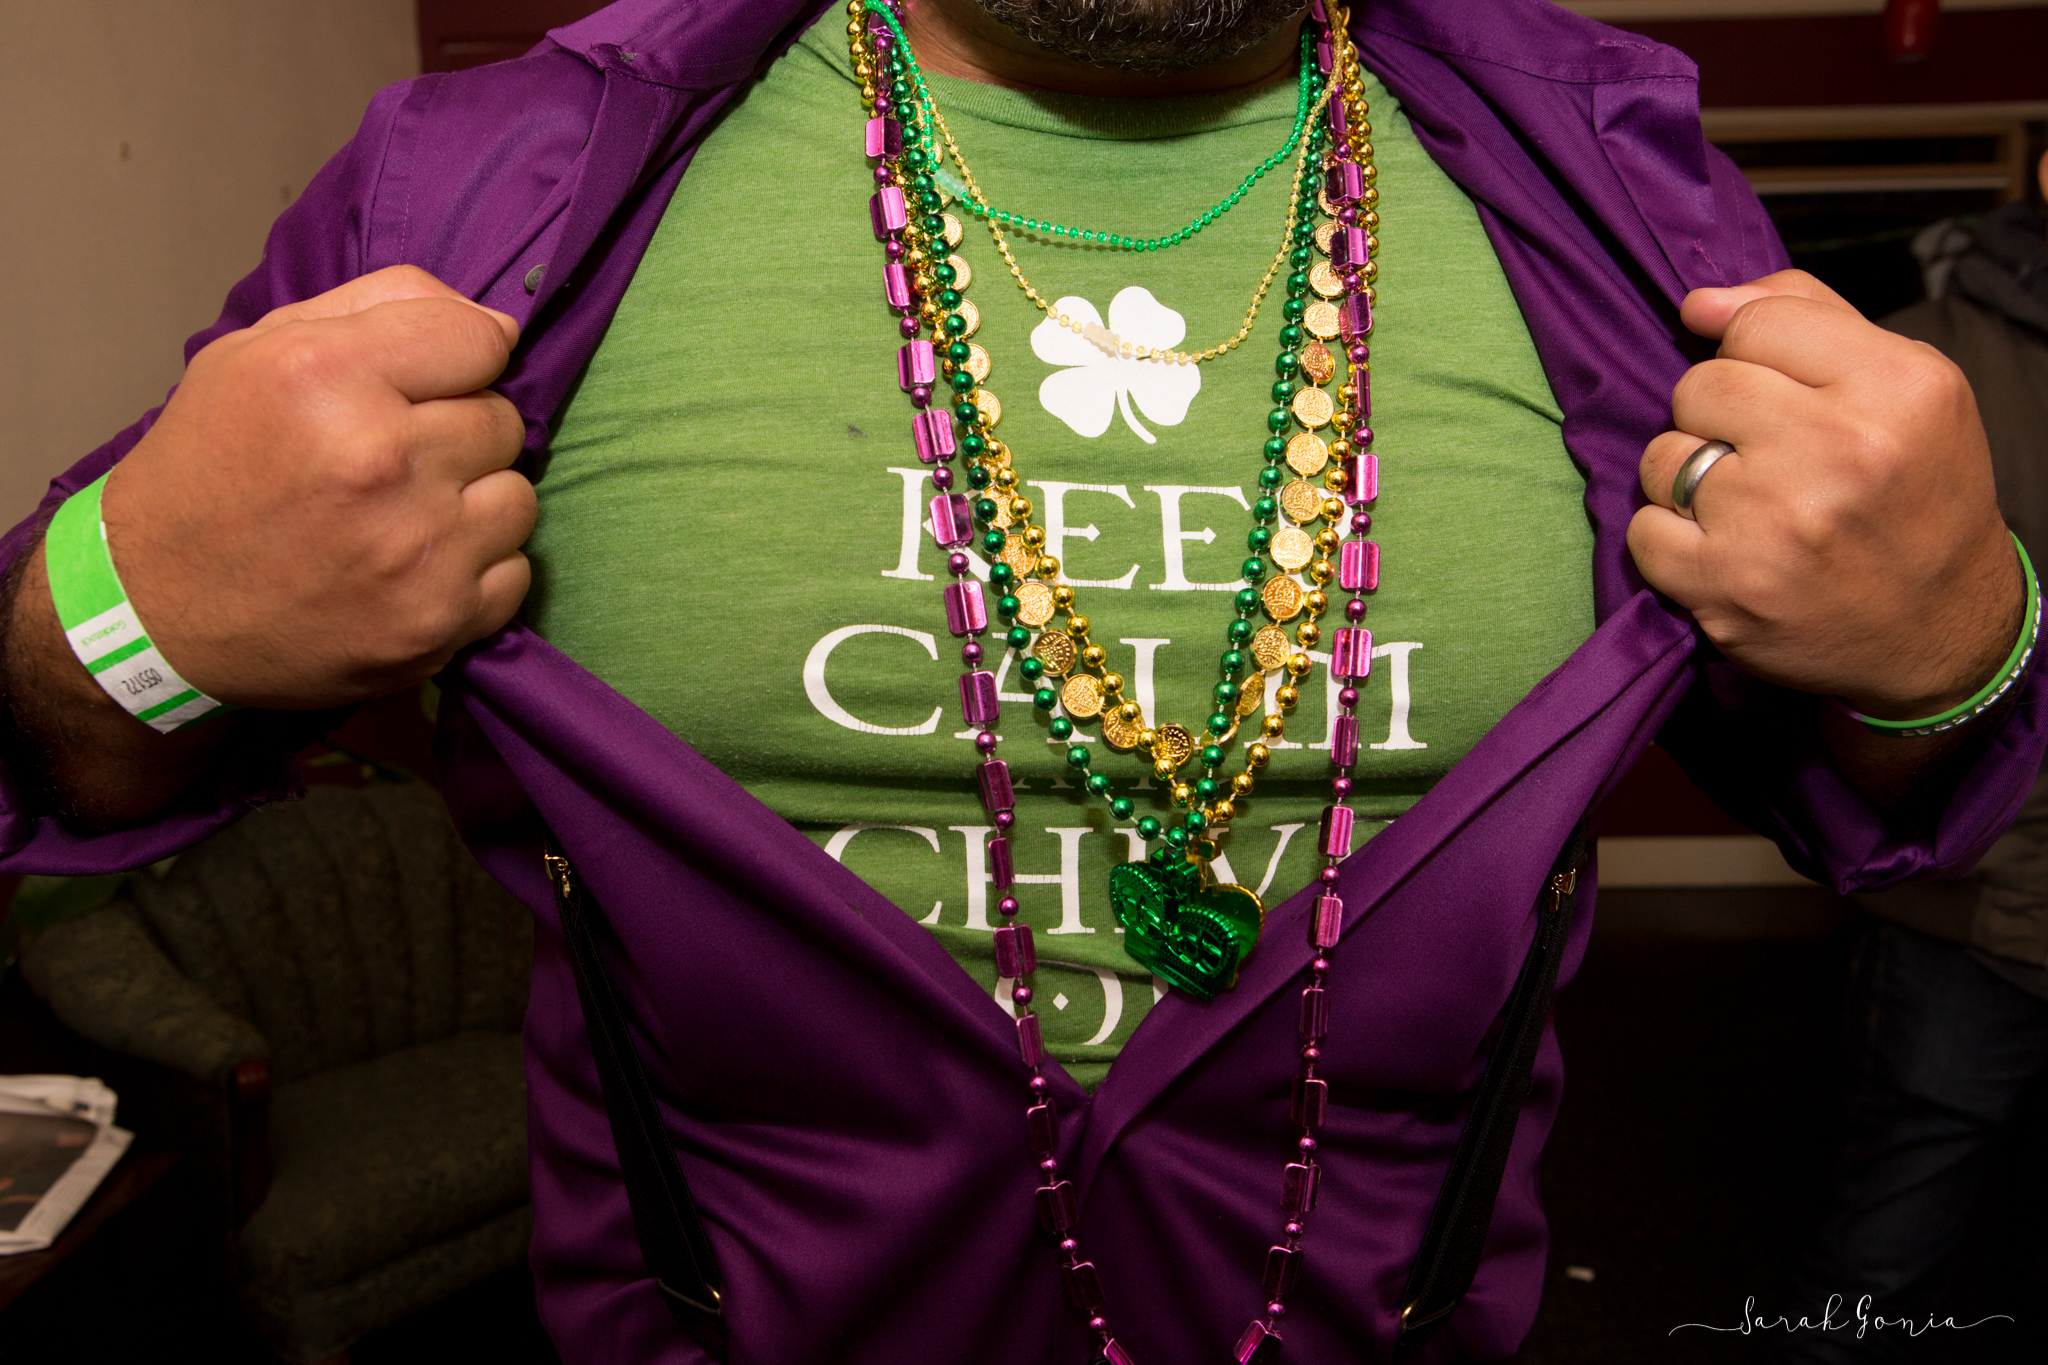 Oly Chivers | Olympia Event Photographer